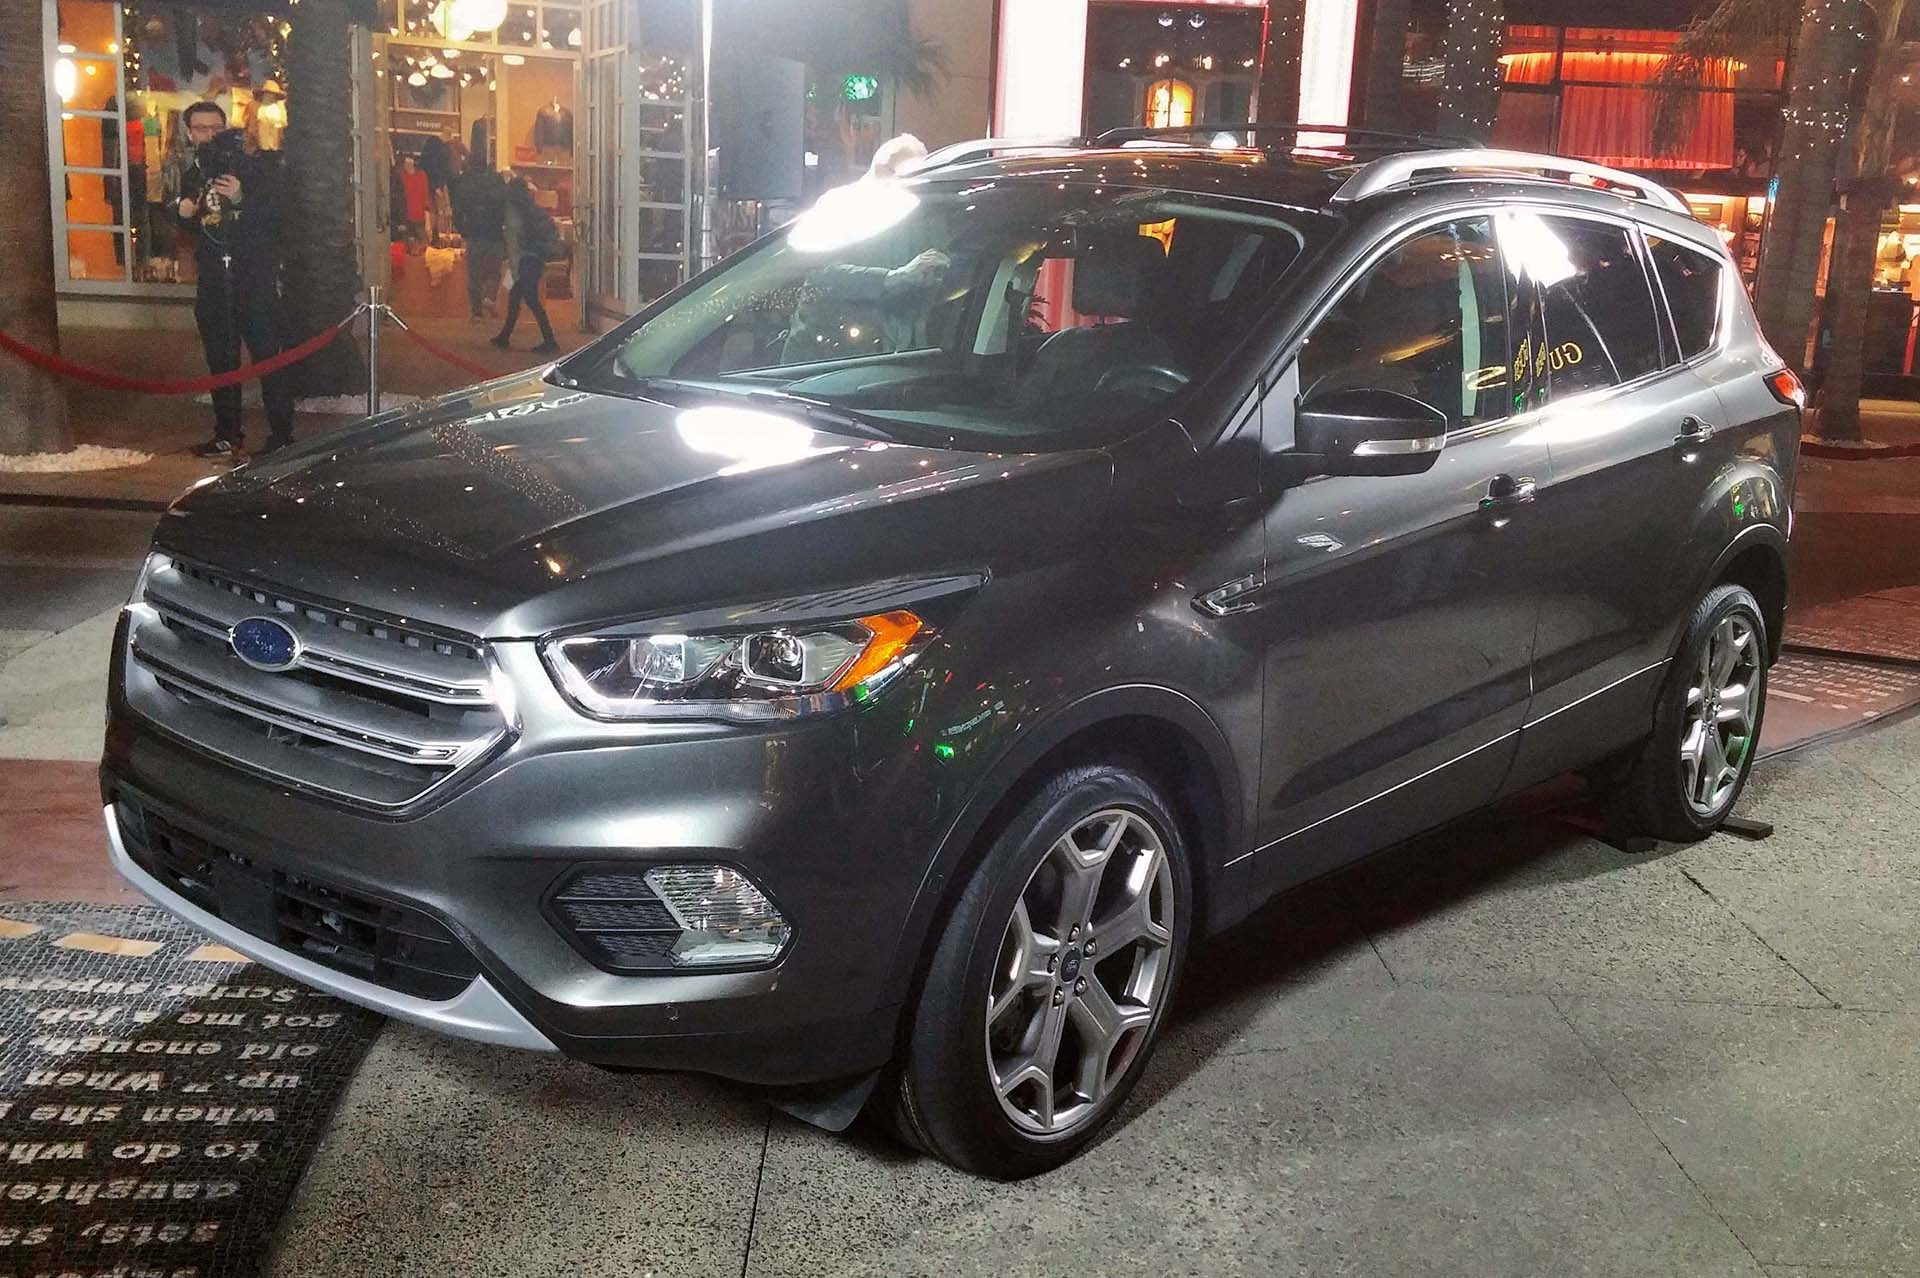 Ford revealed a refreshed 2017 Escape last night at a special event before the Los Angeles auto show. While the manufacturer calls this the fourth-generation of its best-selling crossover model, in truth, it's a warming-over of the second gen introduced in 2012.